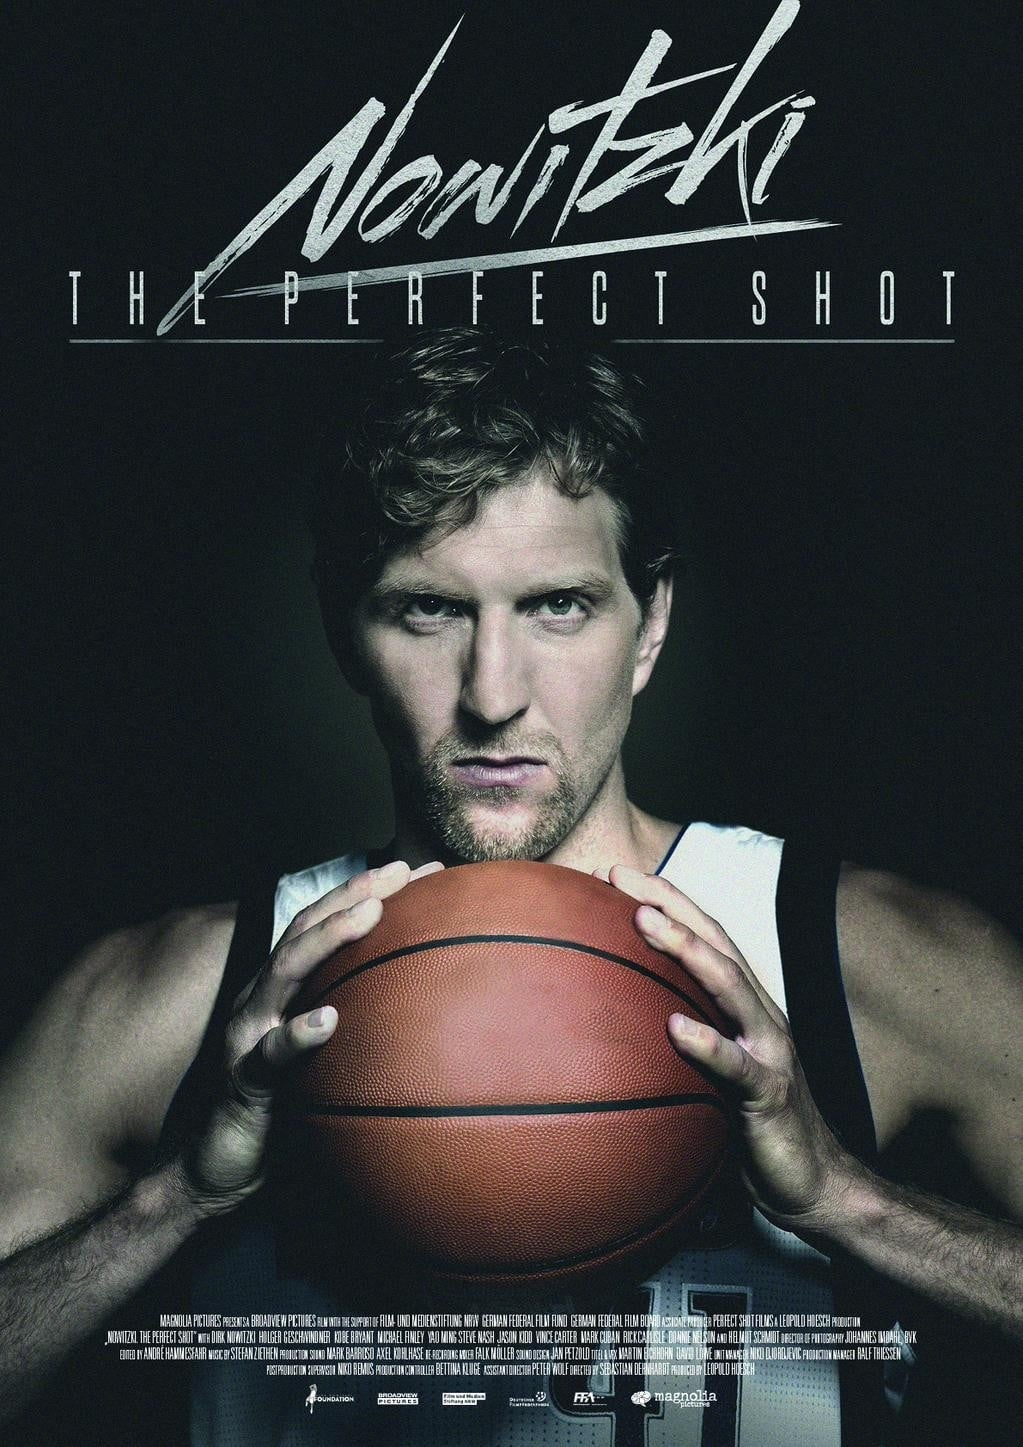 Nowitzki: The Perfect Shot on FREECABLE TV